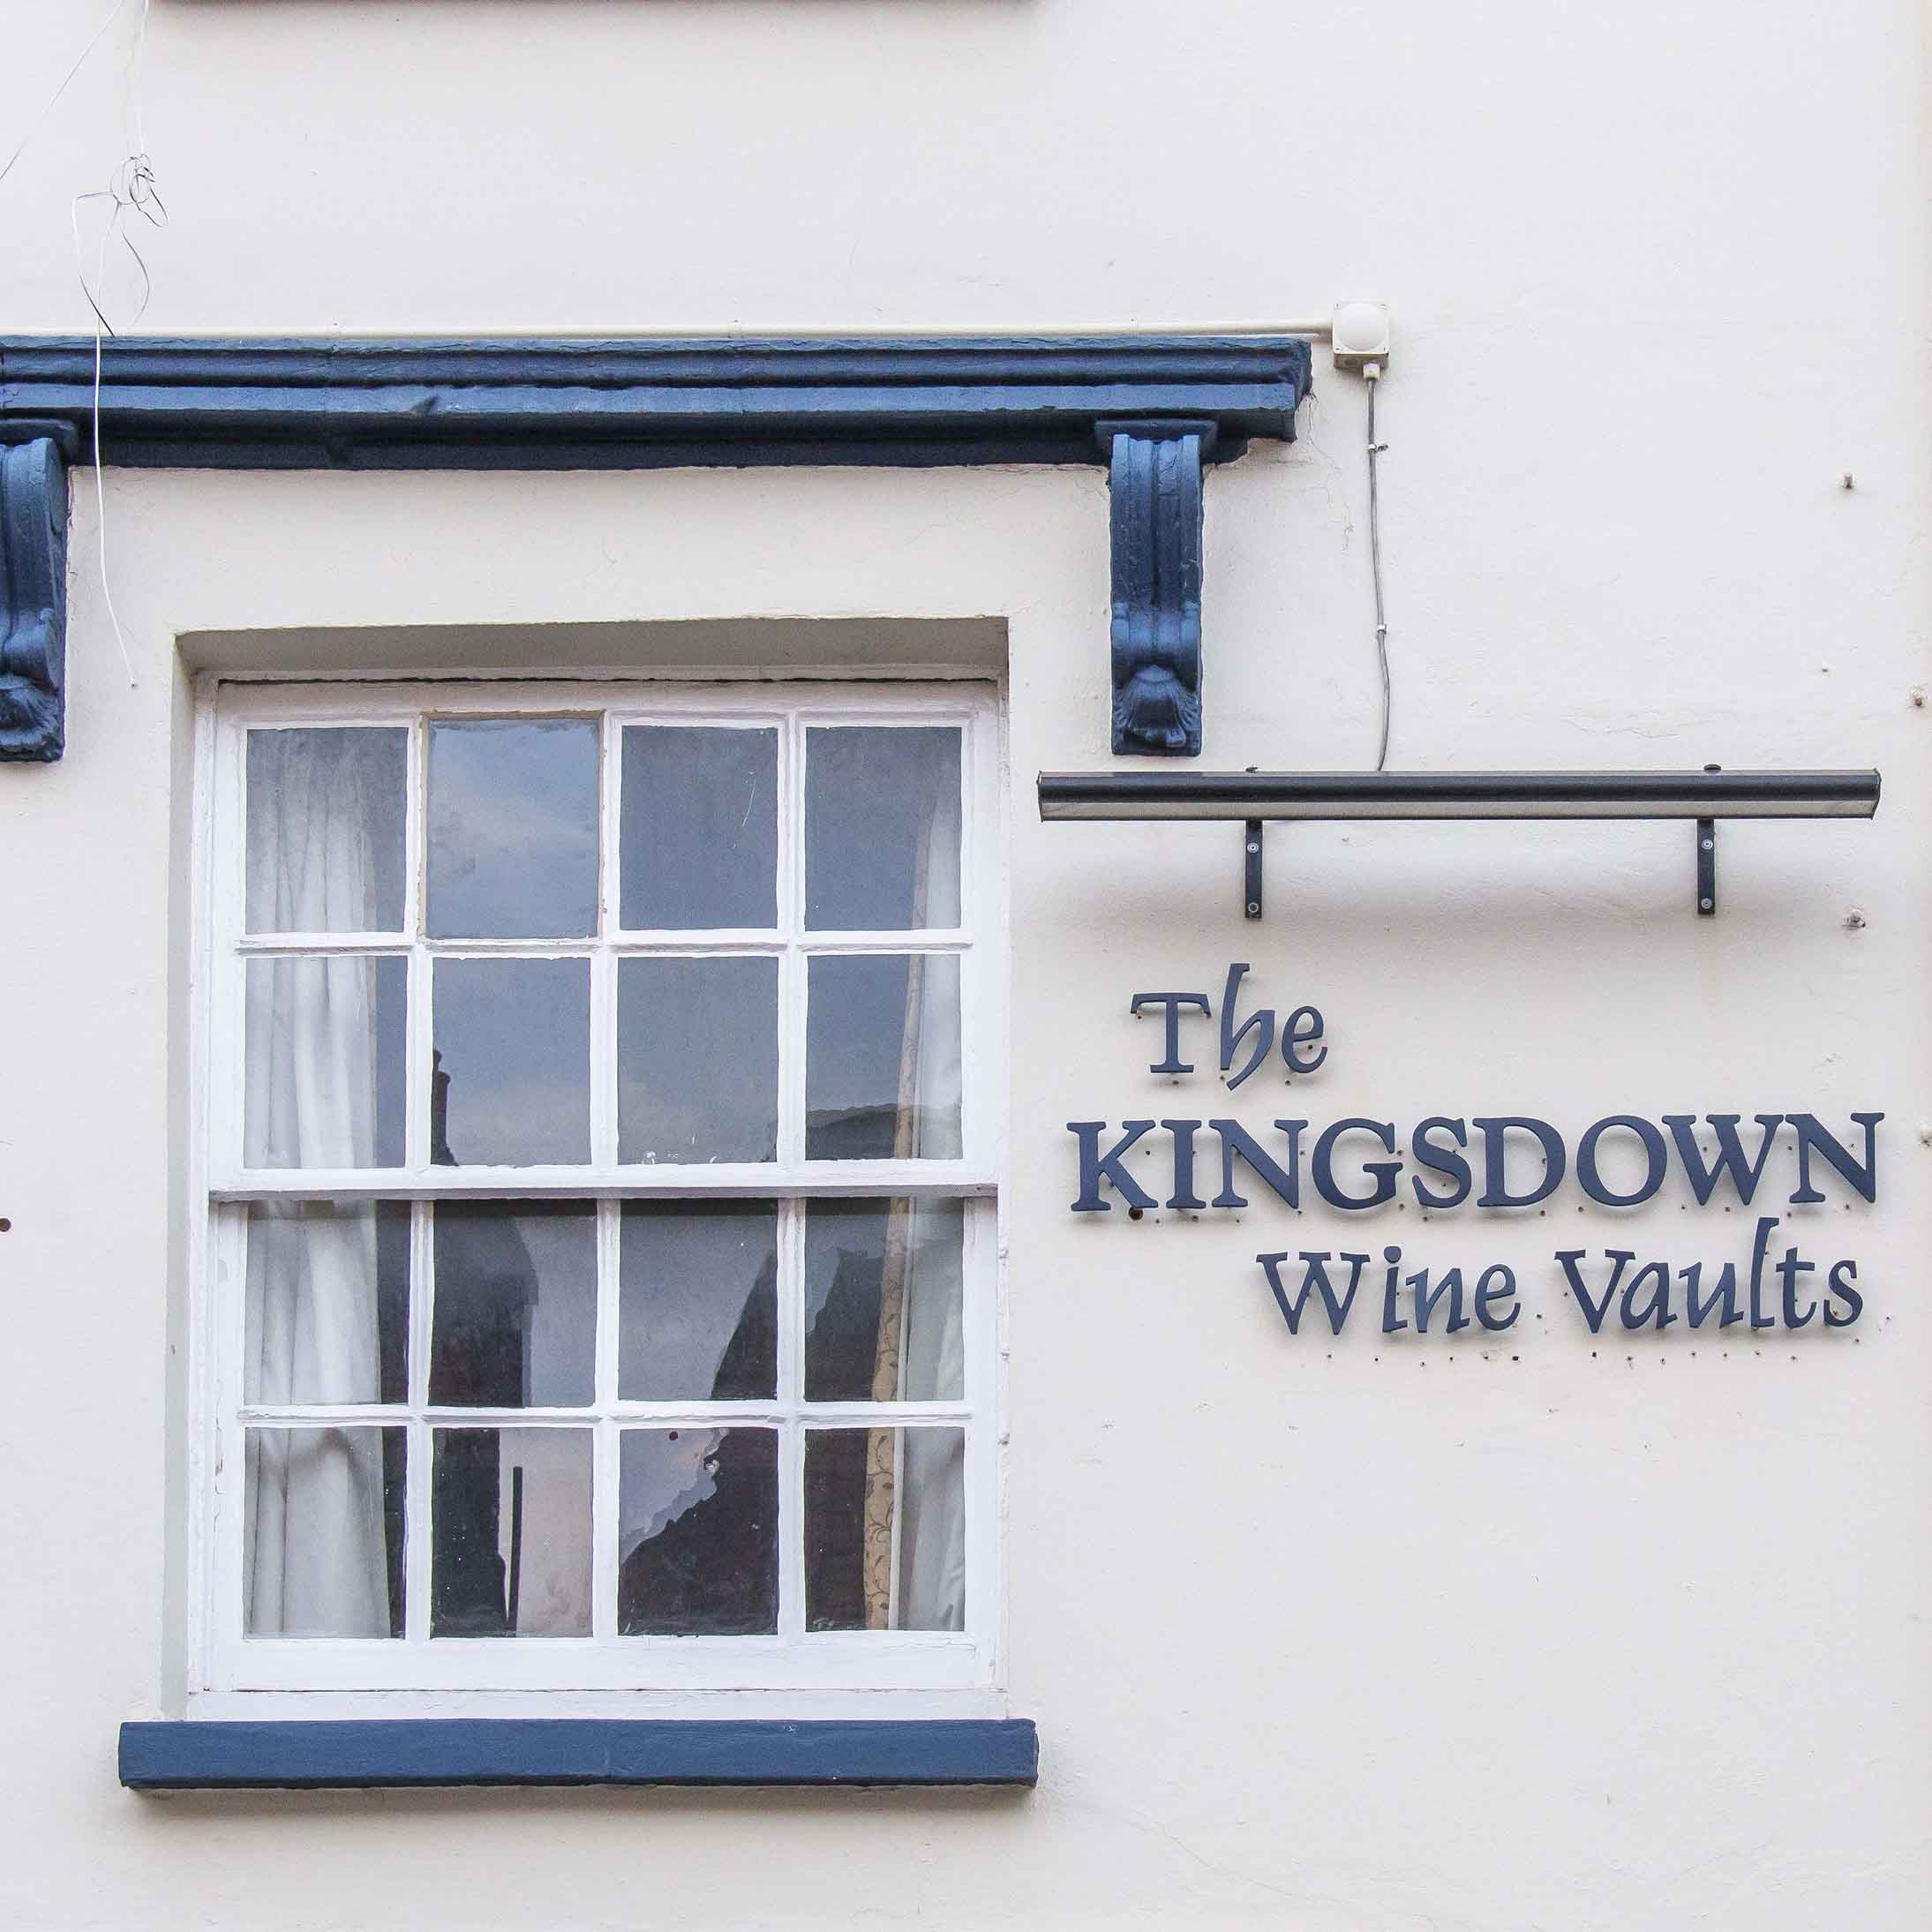 Kingsdown collage image